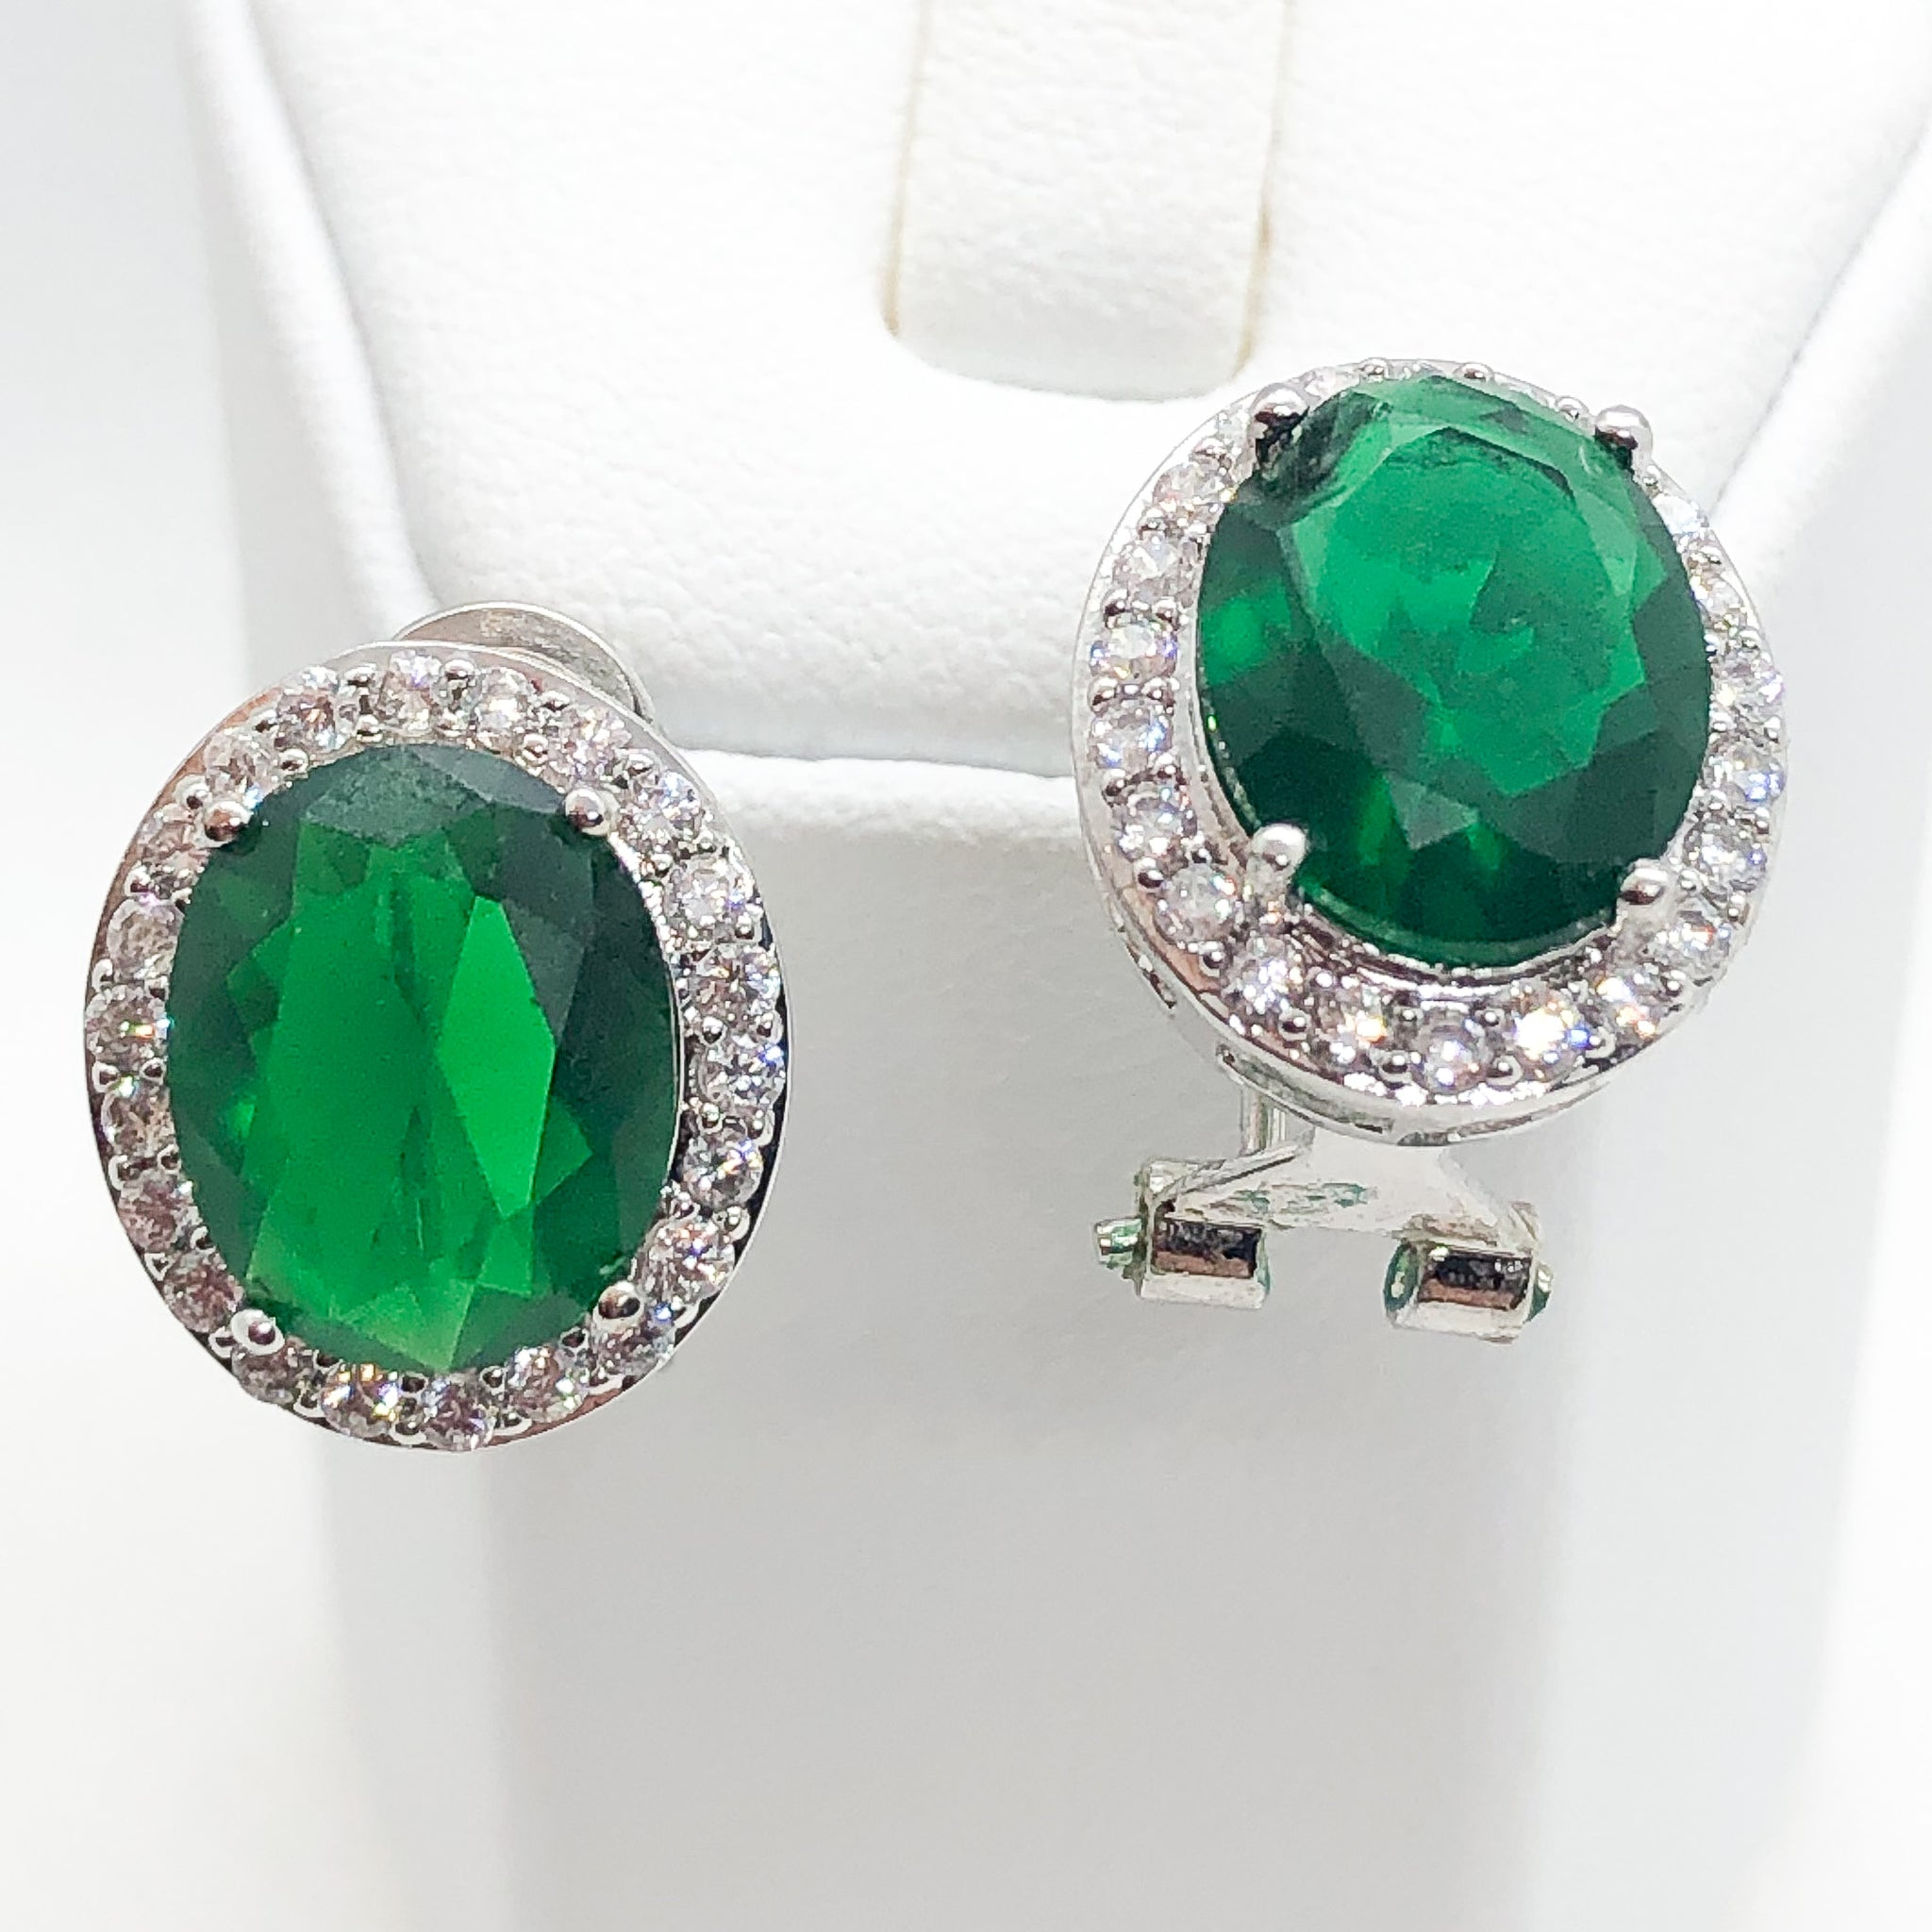 ID: E1448A Women Jewelry 18K White Gold GF Emerald with Clear Round Stones Earrings Fashion Lady Party Stud